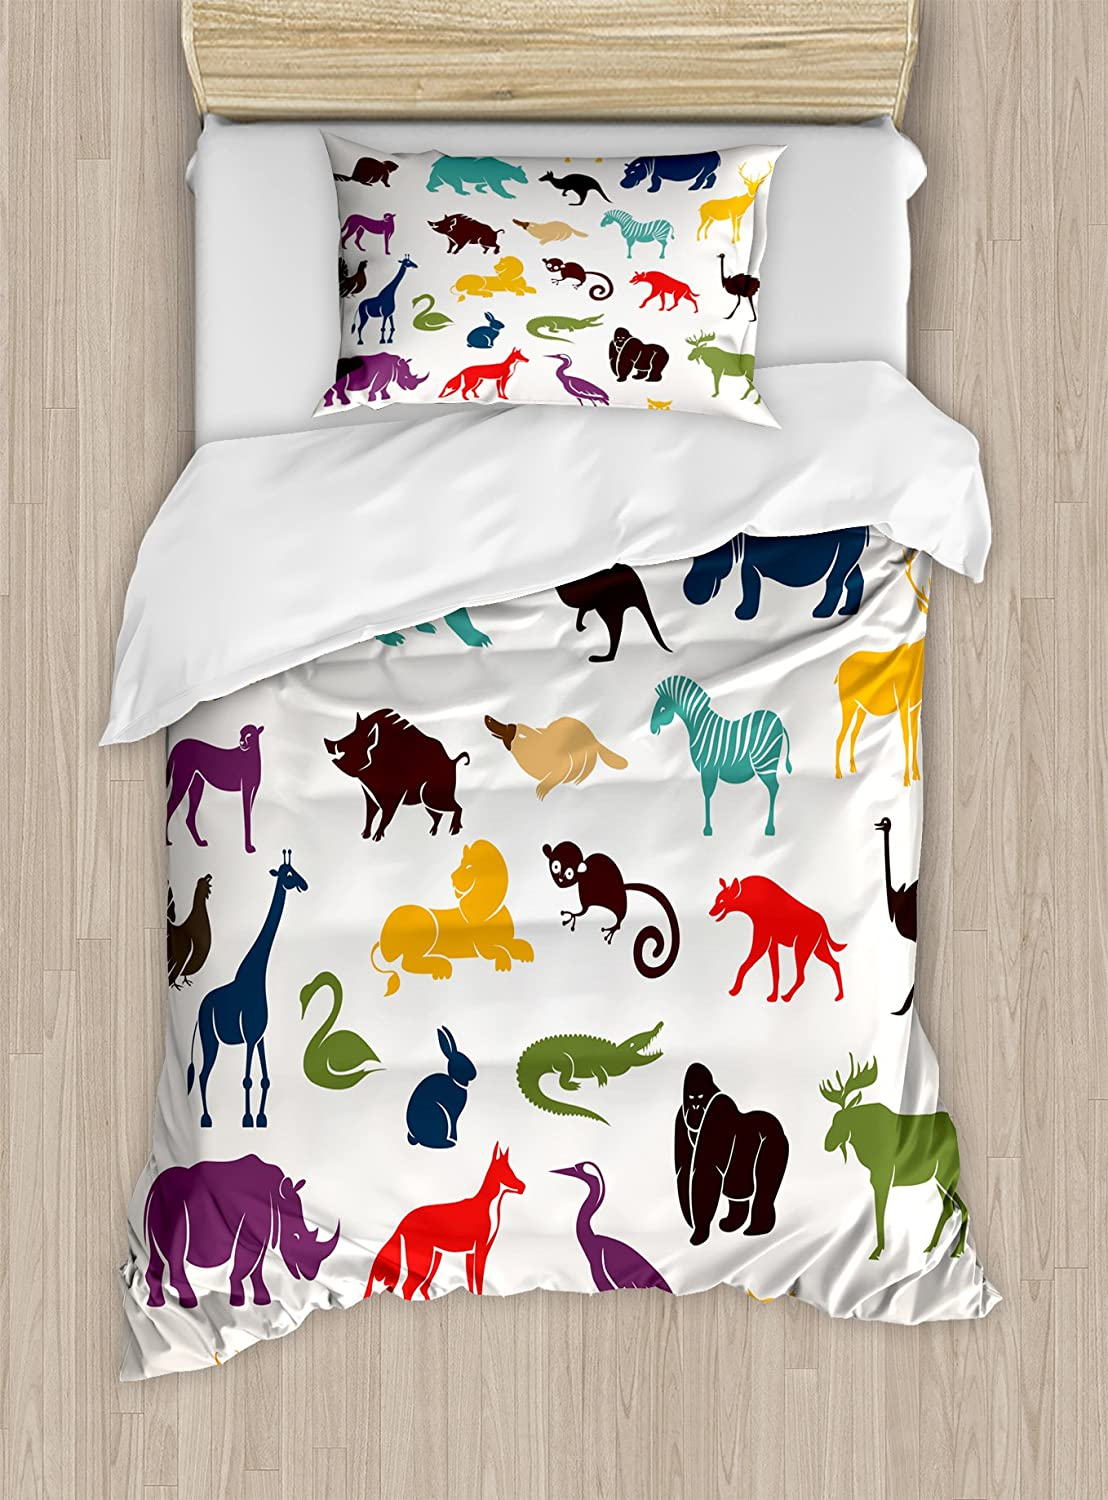 Ambesonne Zoo Duvet Cover Set, European Animal Silhouettes in Cartoon Style Safari Wildlife Zoo Theme, Decorative 2 Piece Bedding Set with 1 Pillow Sham, Twin Size, Orange Seafoam